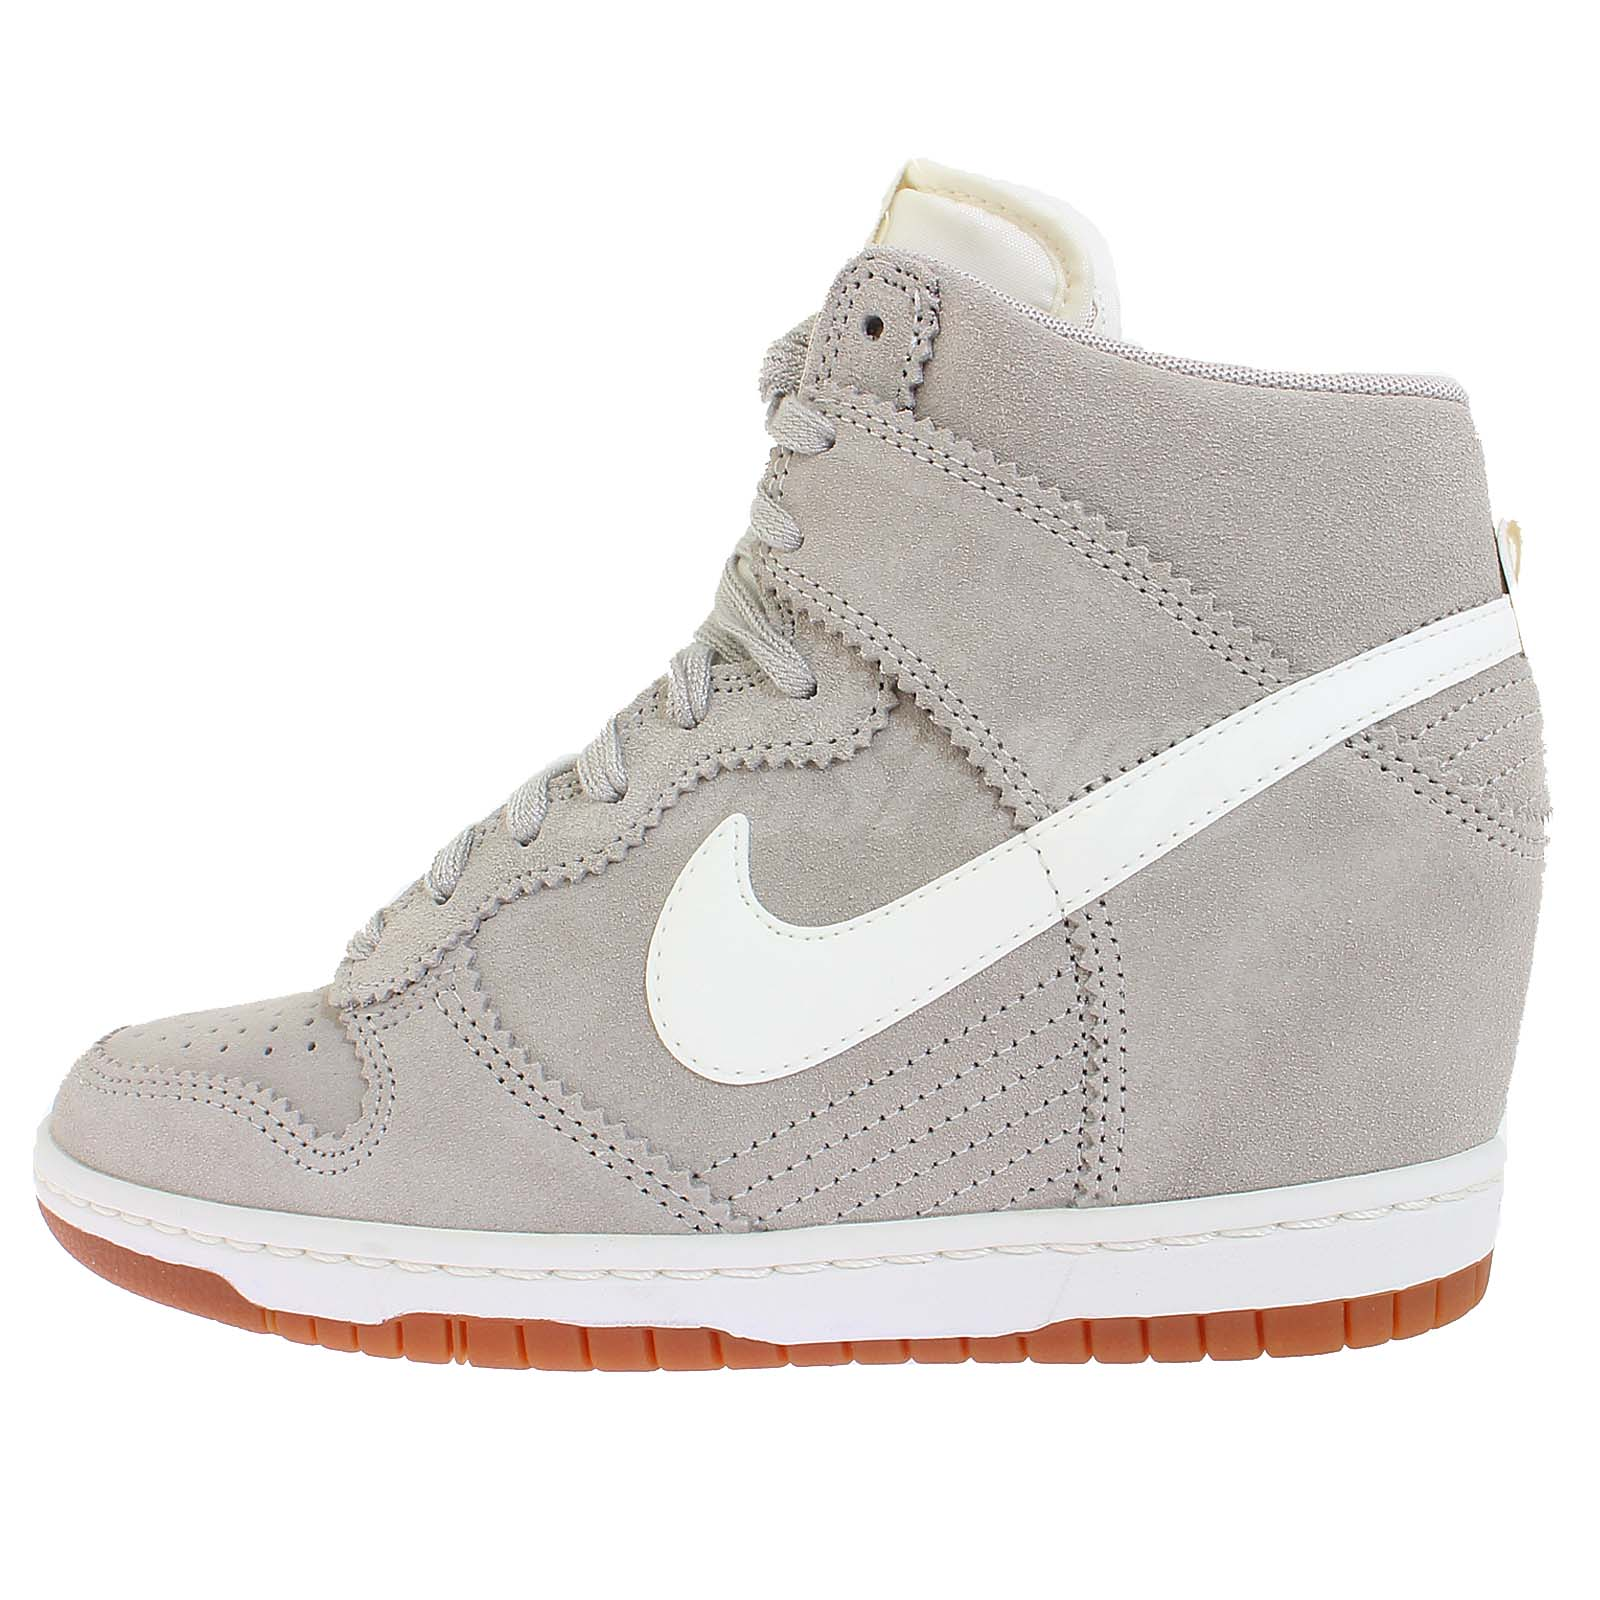 Brilliant About Nike Wedge Sneakers On Pinterest  Wedge Sneakers White Wedge